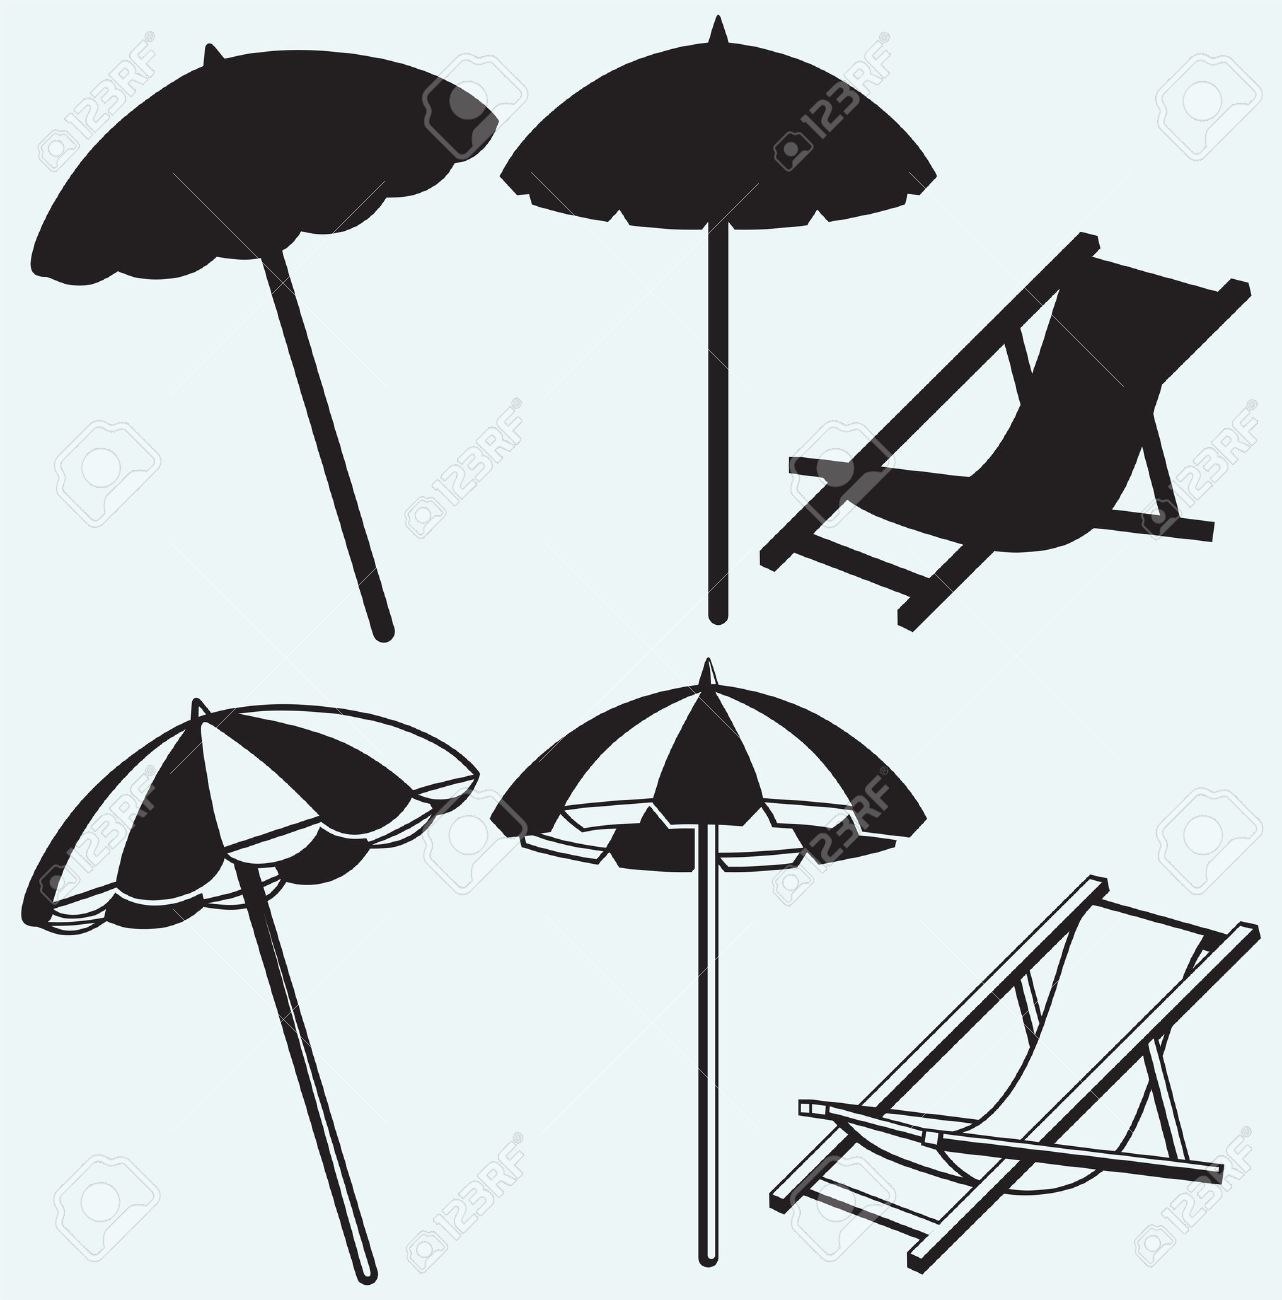 18,932 Beach Umbrella Stock Vector Illustration And Royalty Free.